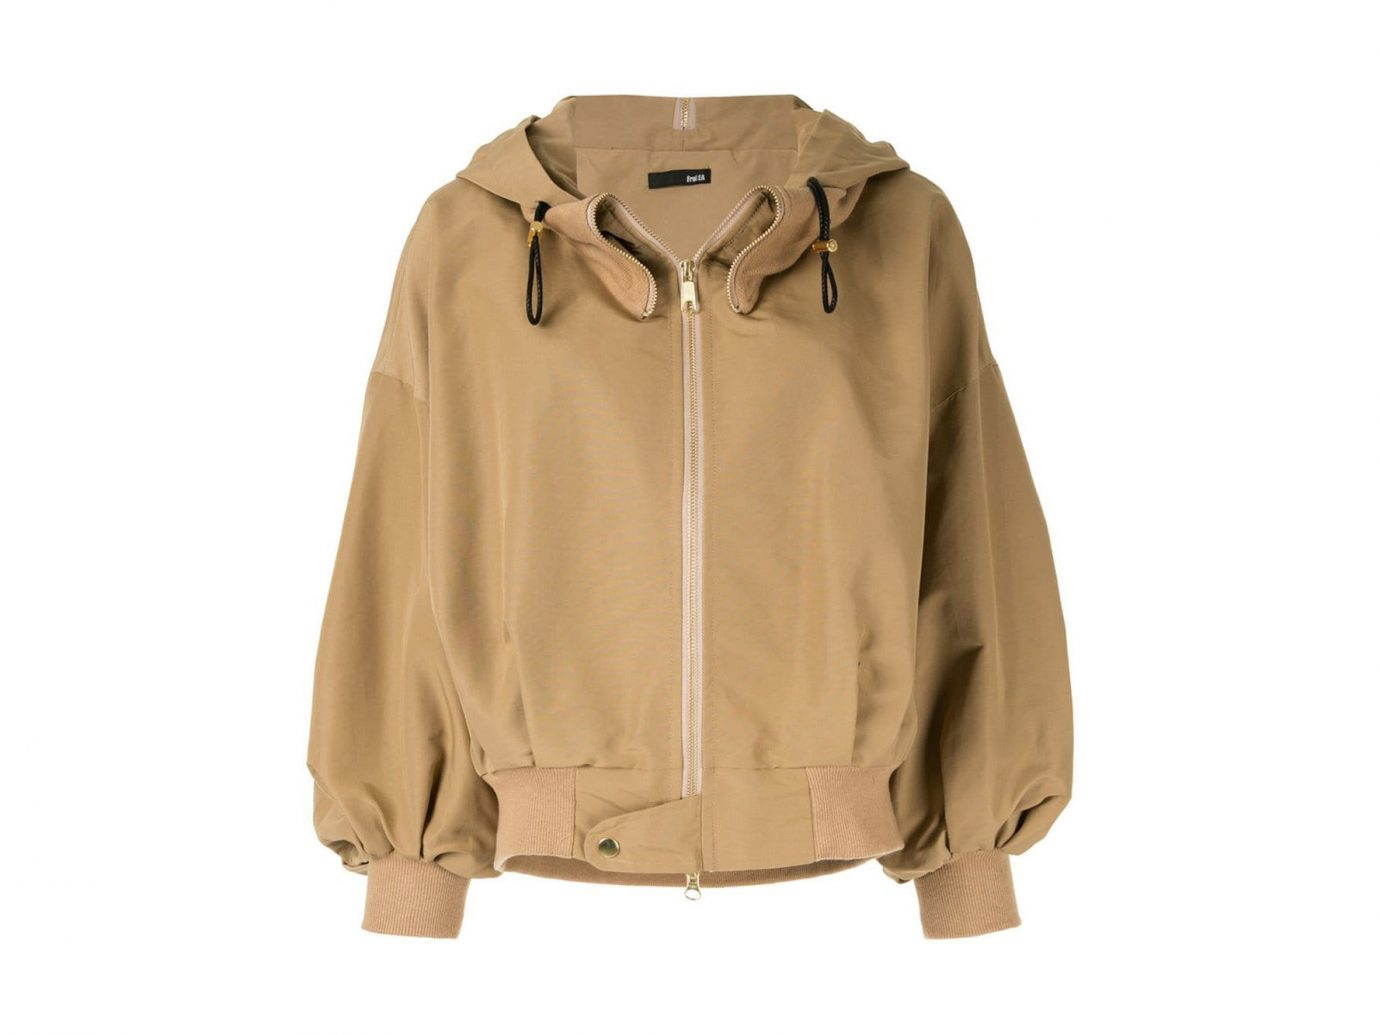 Frei EA hooded bomber jacket